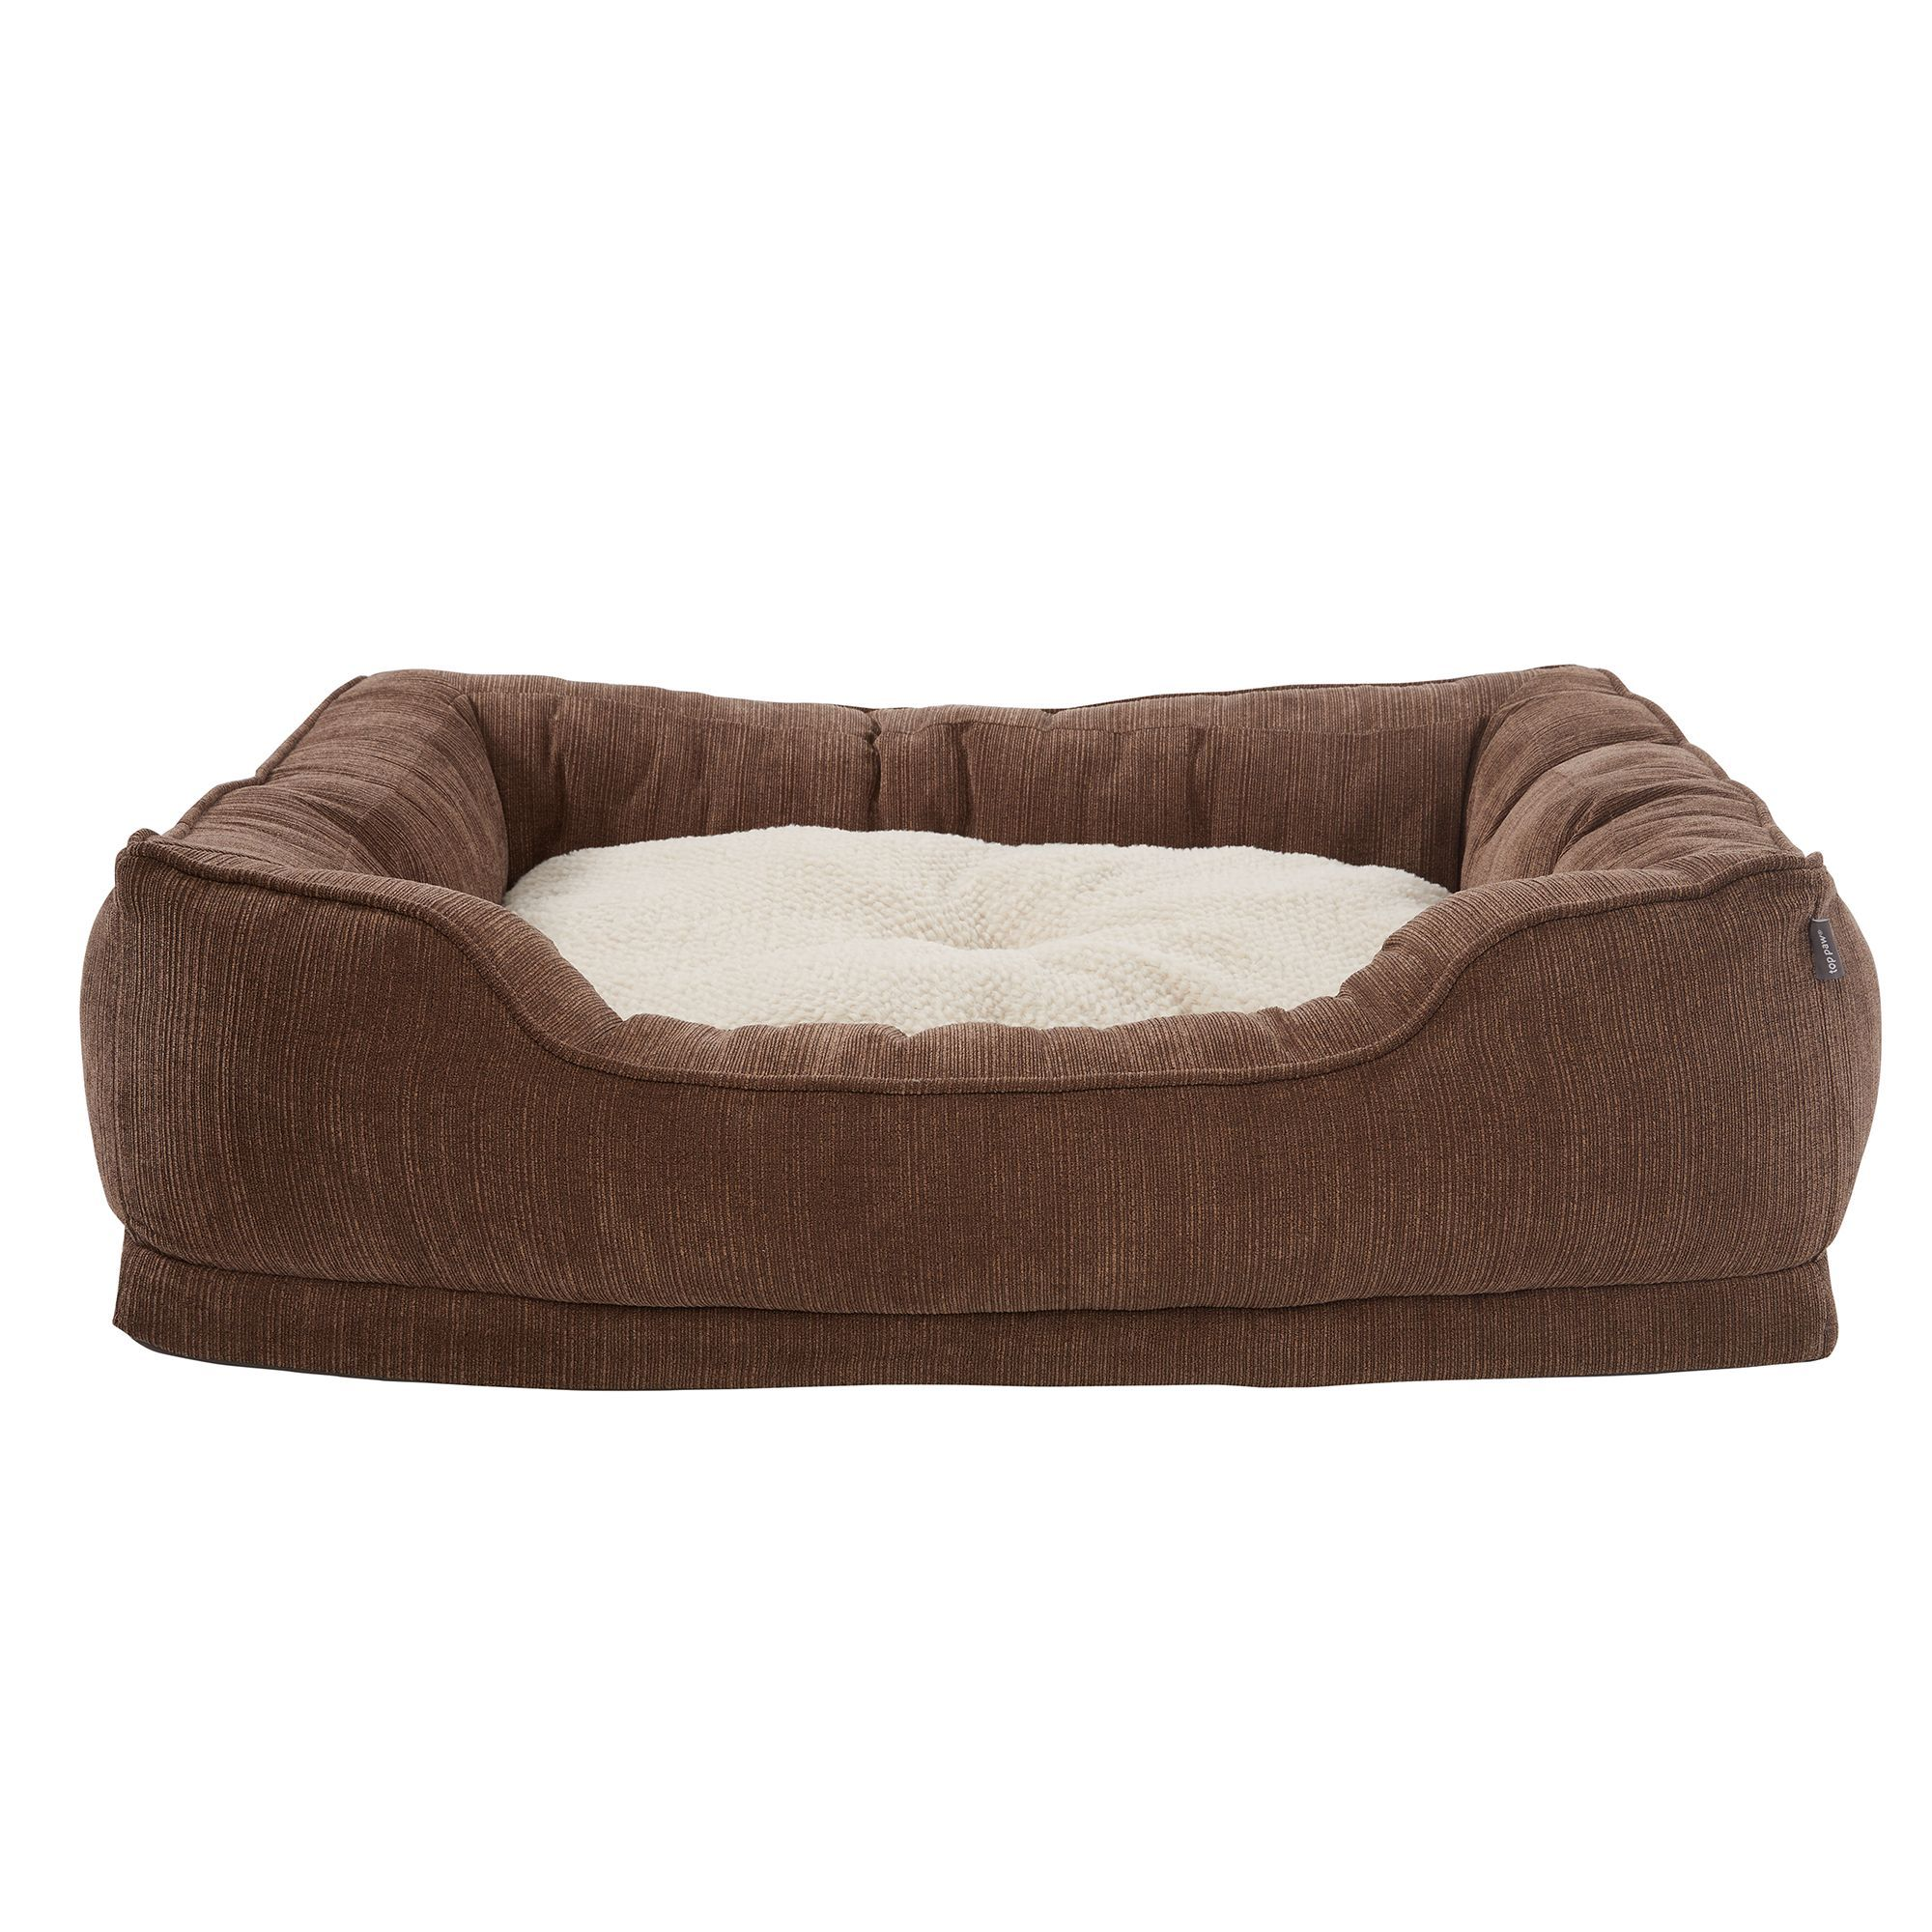 Top Paw Orthopedic Premium Support Square Lounger Pet Bed Size 30 L X 38 W X 1h Brown Pet Bed Dog Pillow Bed Bed Sizes